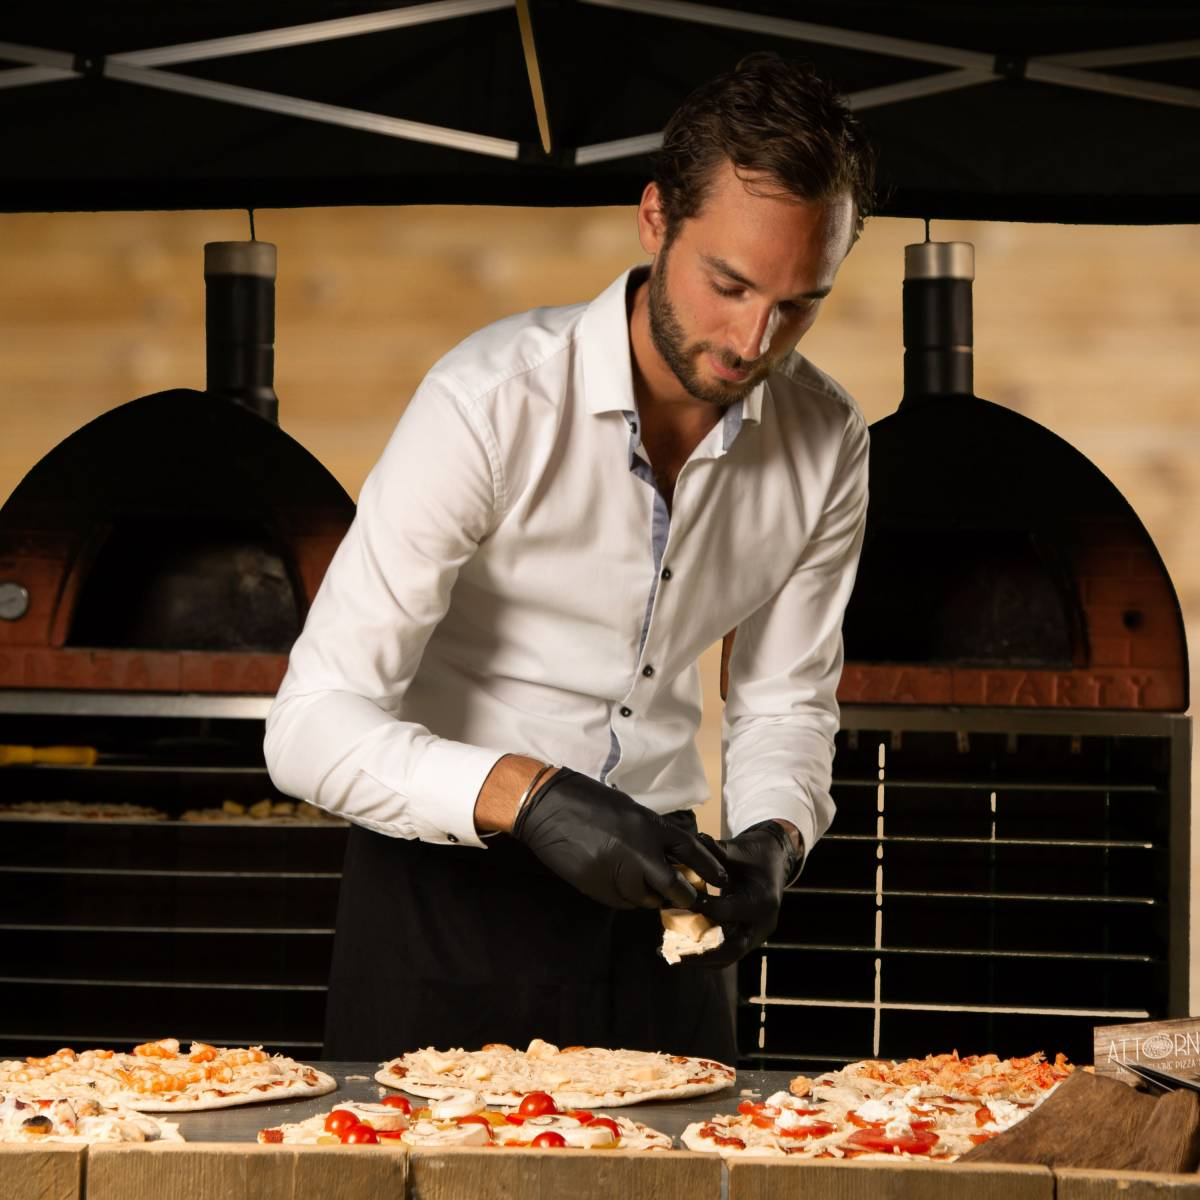 Attorno - Foodtruck - Pizza - House of Weddings - 16